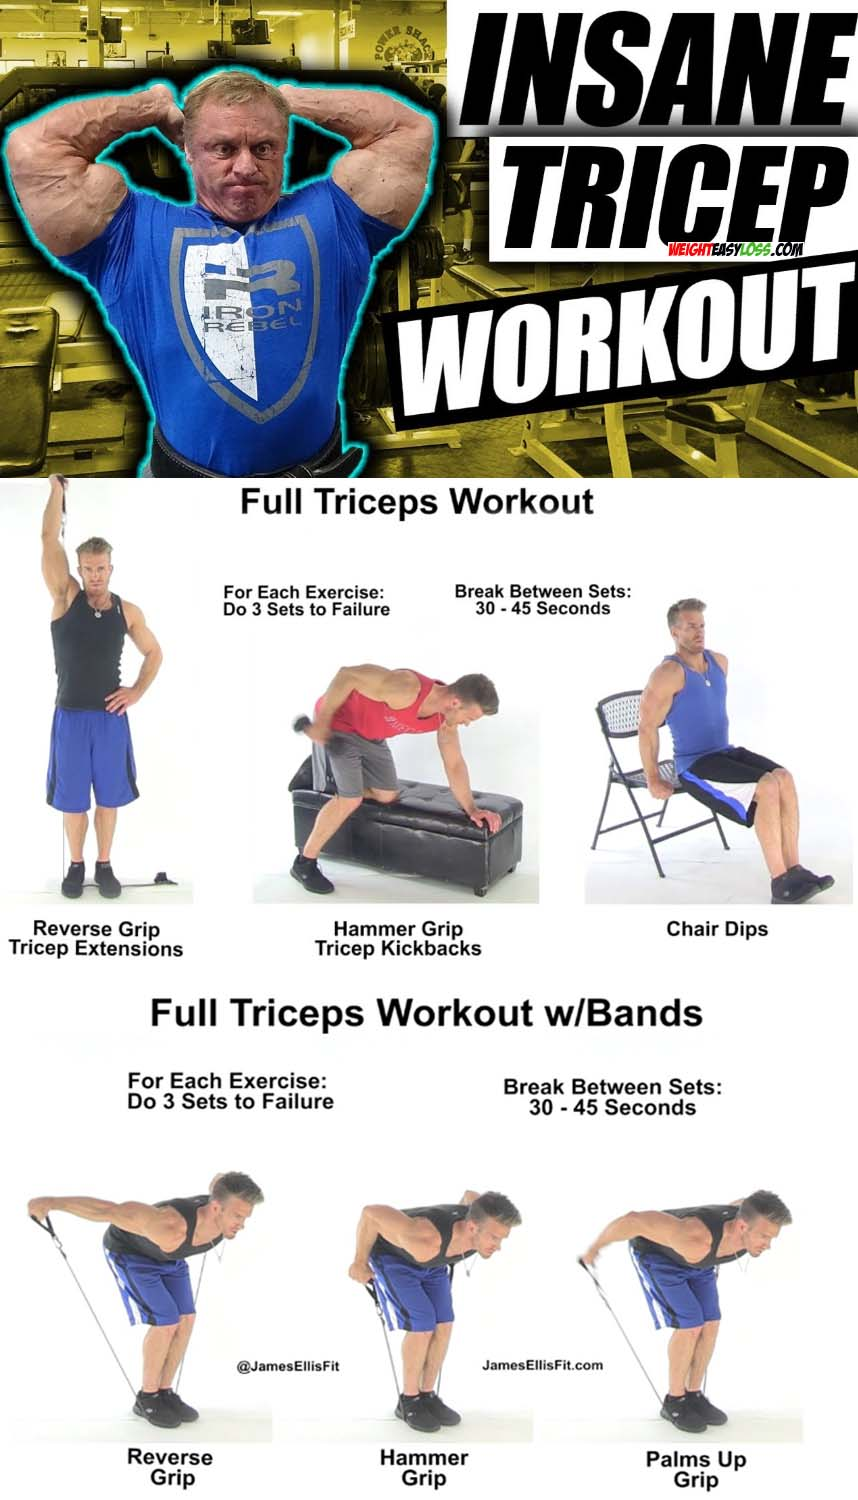 Full Trieps Workout